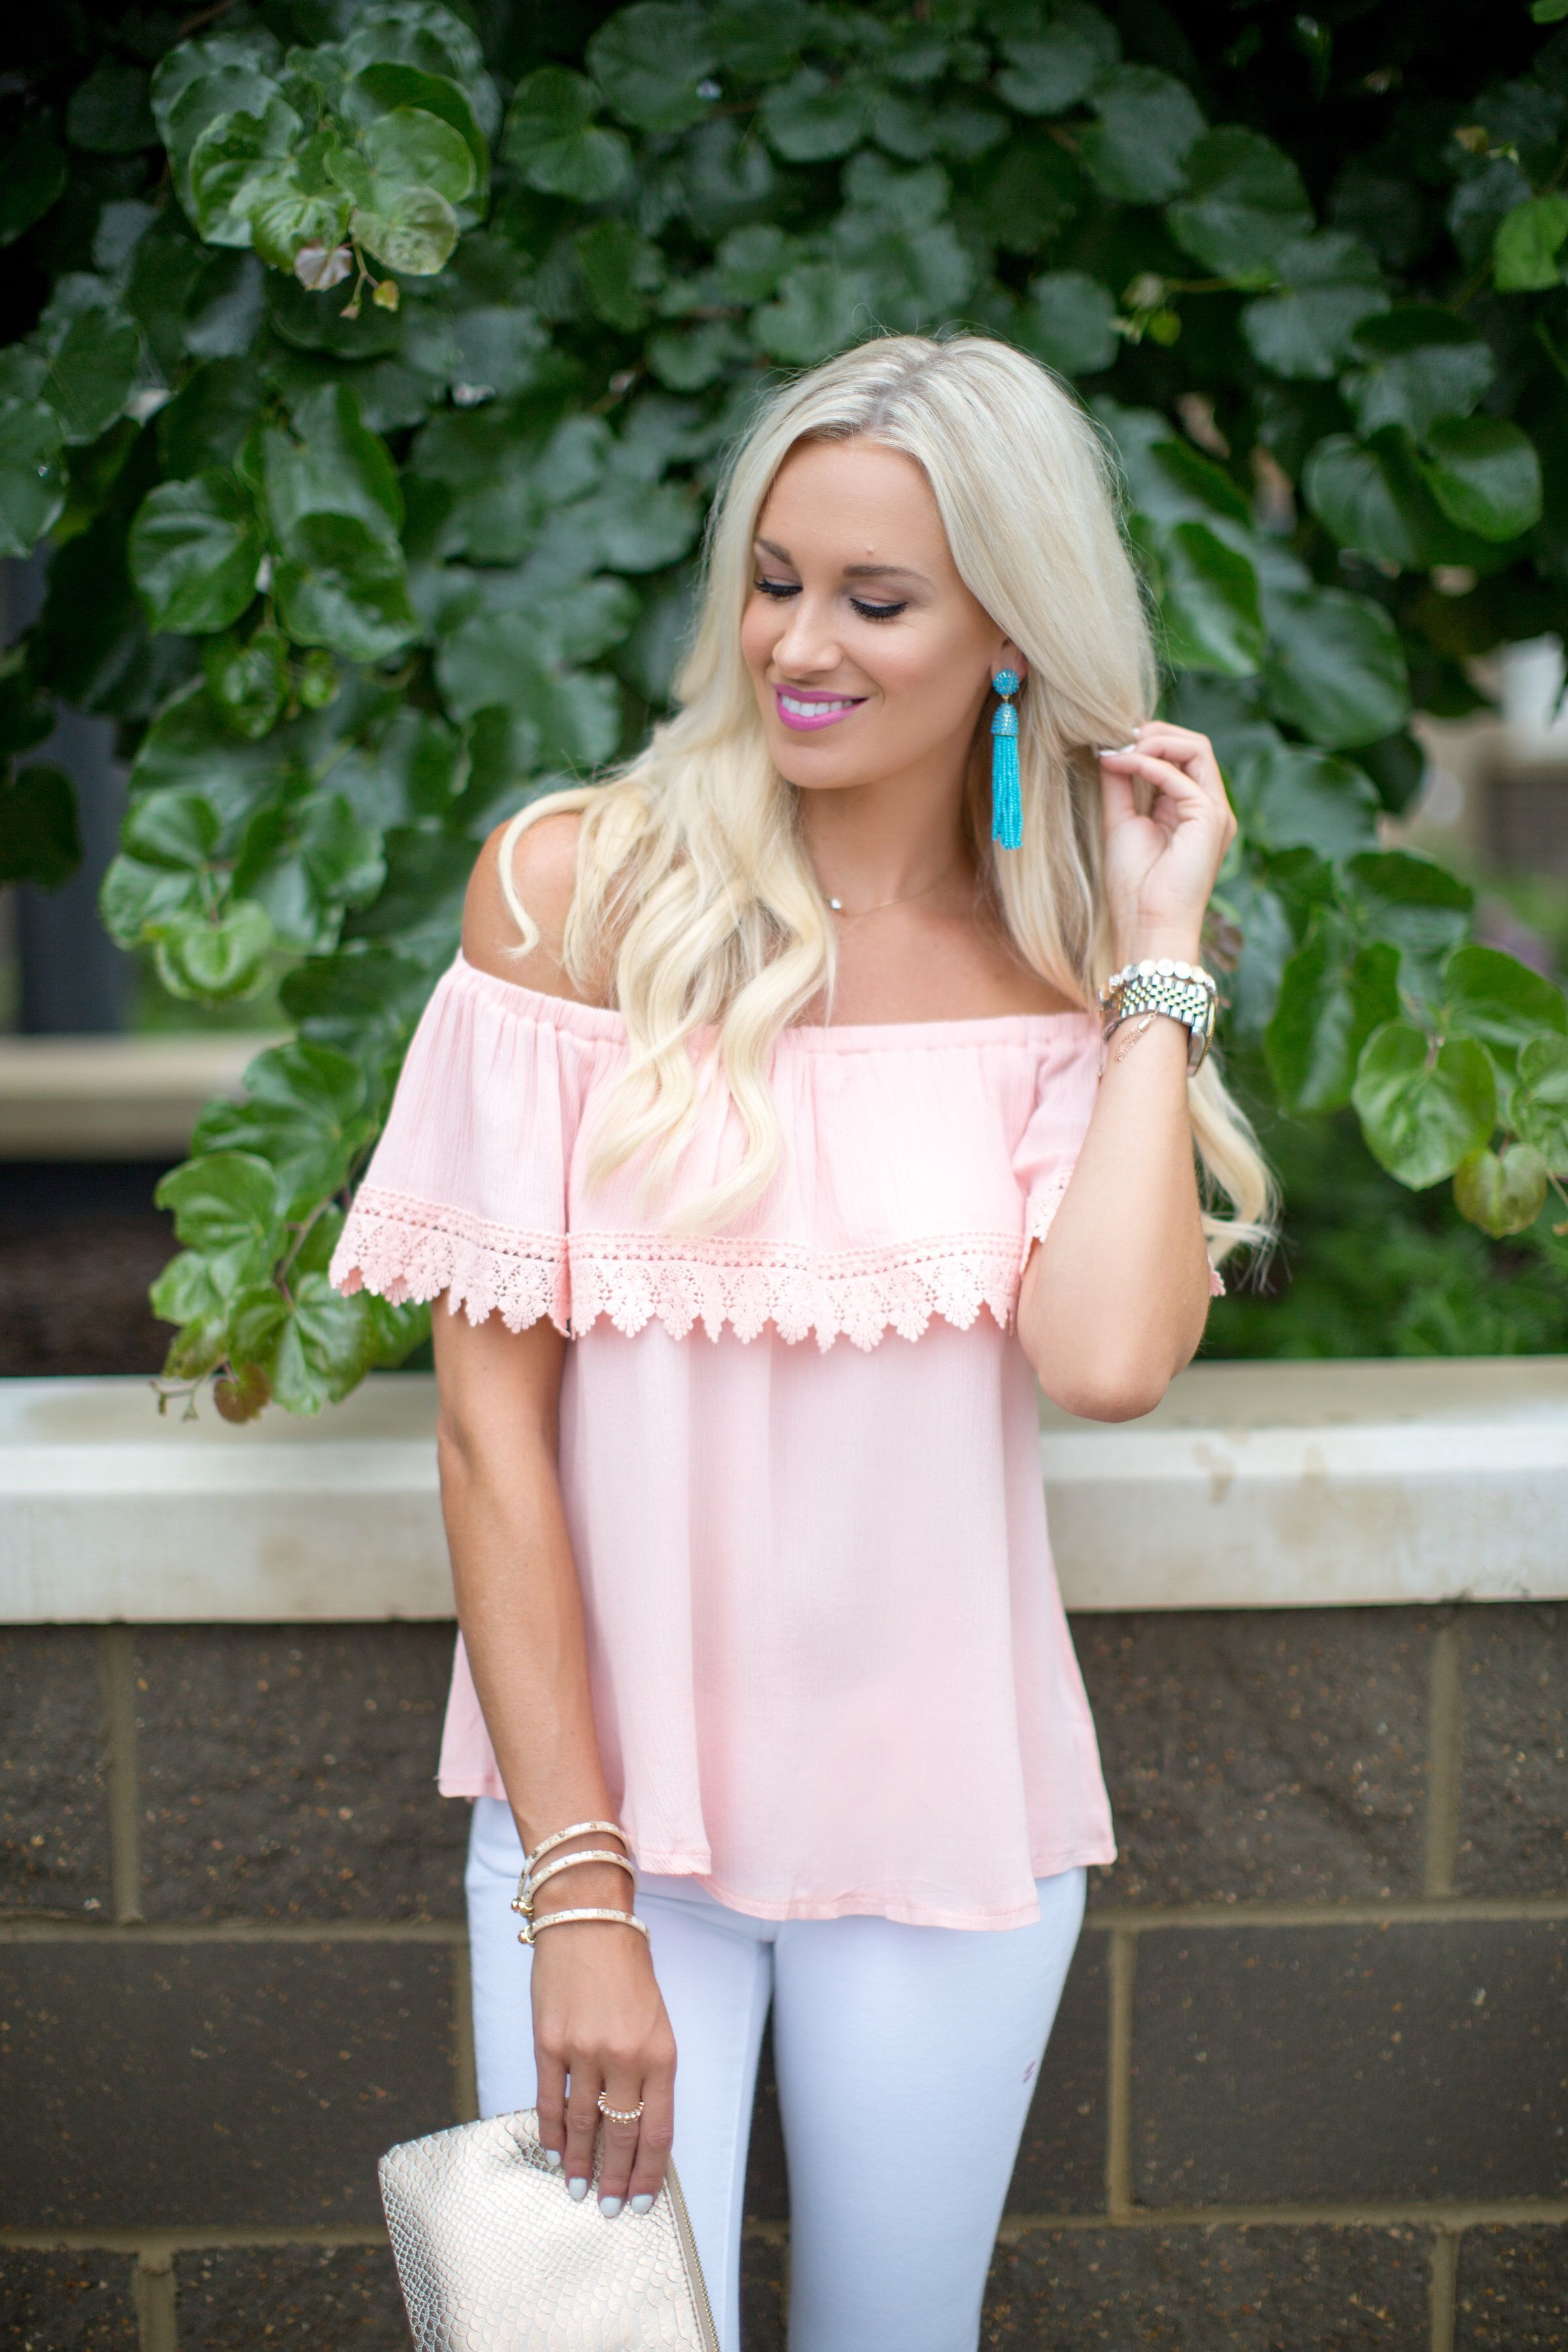 15df93a0d00b66 Jeans, off-the-shoulder top, bright chandelier earrings. | Summer ...